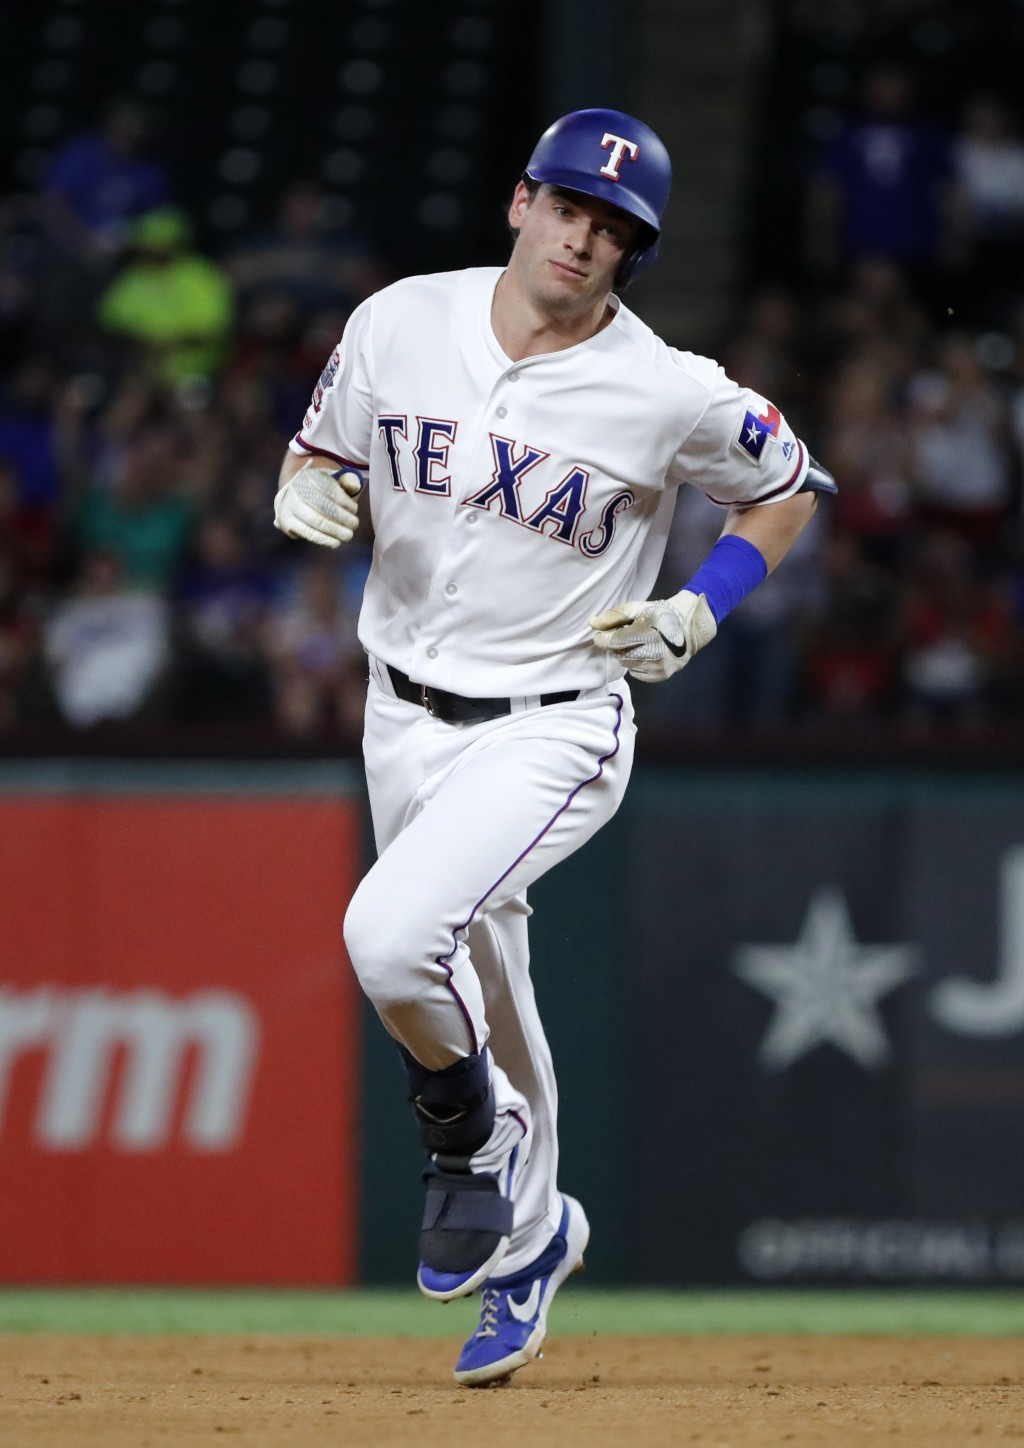 Texas Rangers' Nick Solak runs the bases after hitting a two-run home run against the Tampa Bay Rays during the fourth inning of a baseball game in Ar